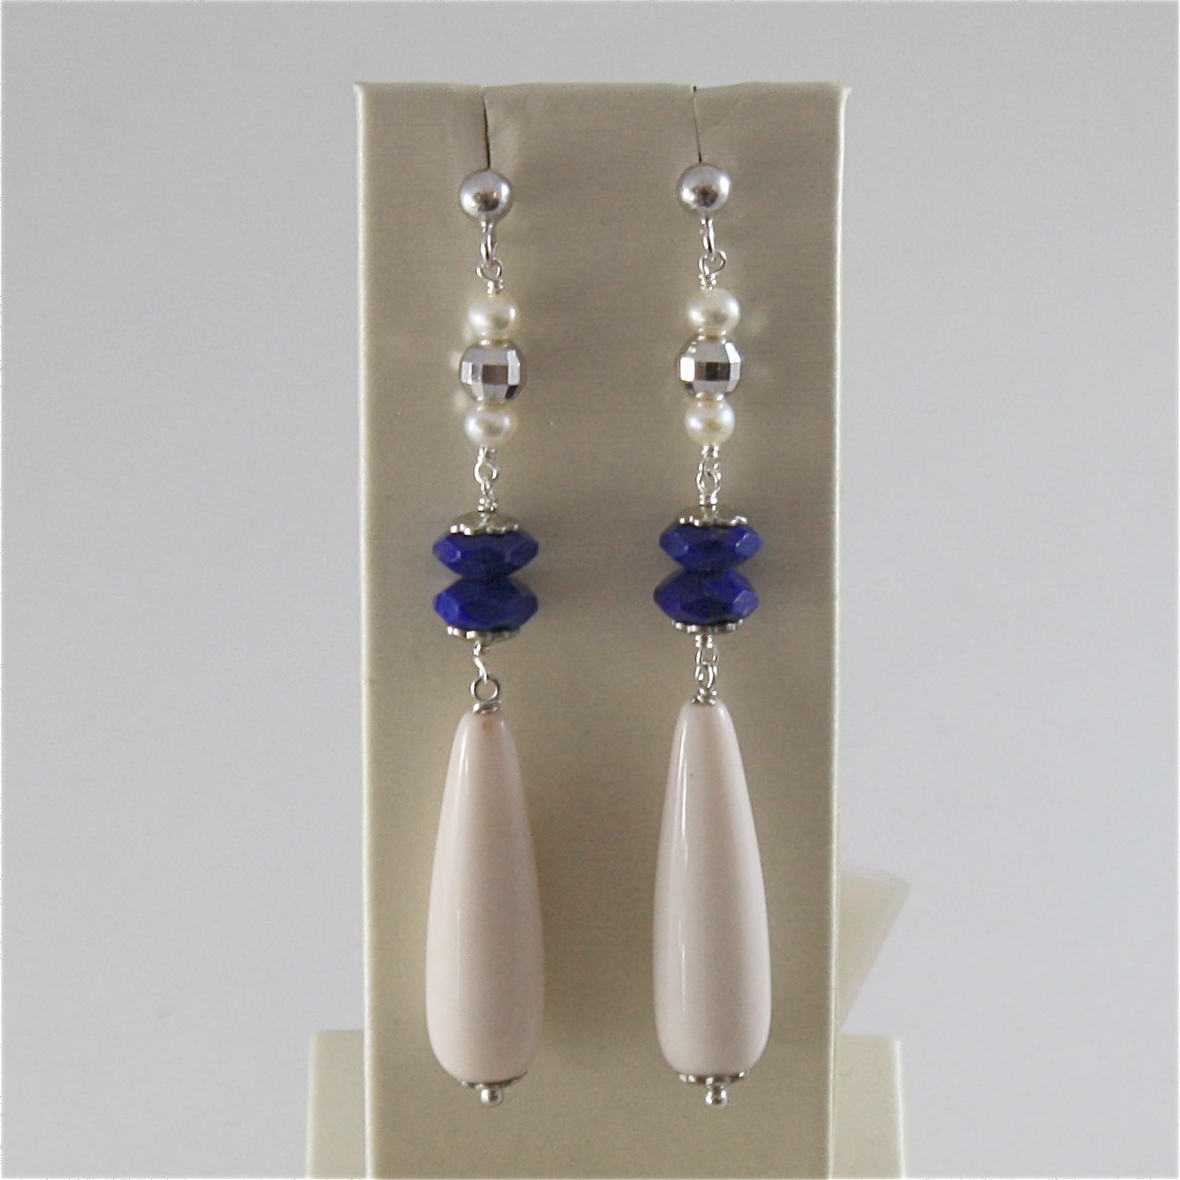 925 RODIUM SILVER EARRINGS WITH FACETED BALLS LAPIS LAZULI PEARL, MADE IN ITALY